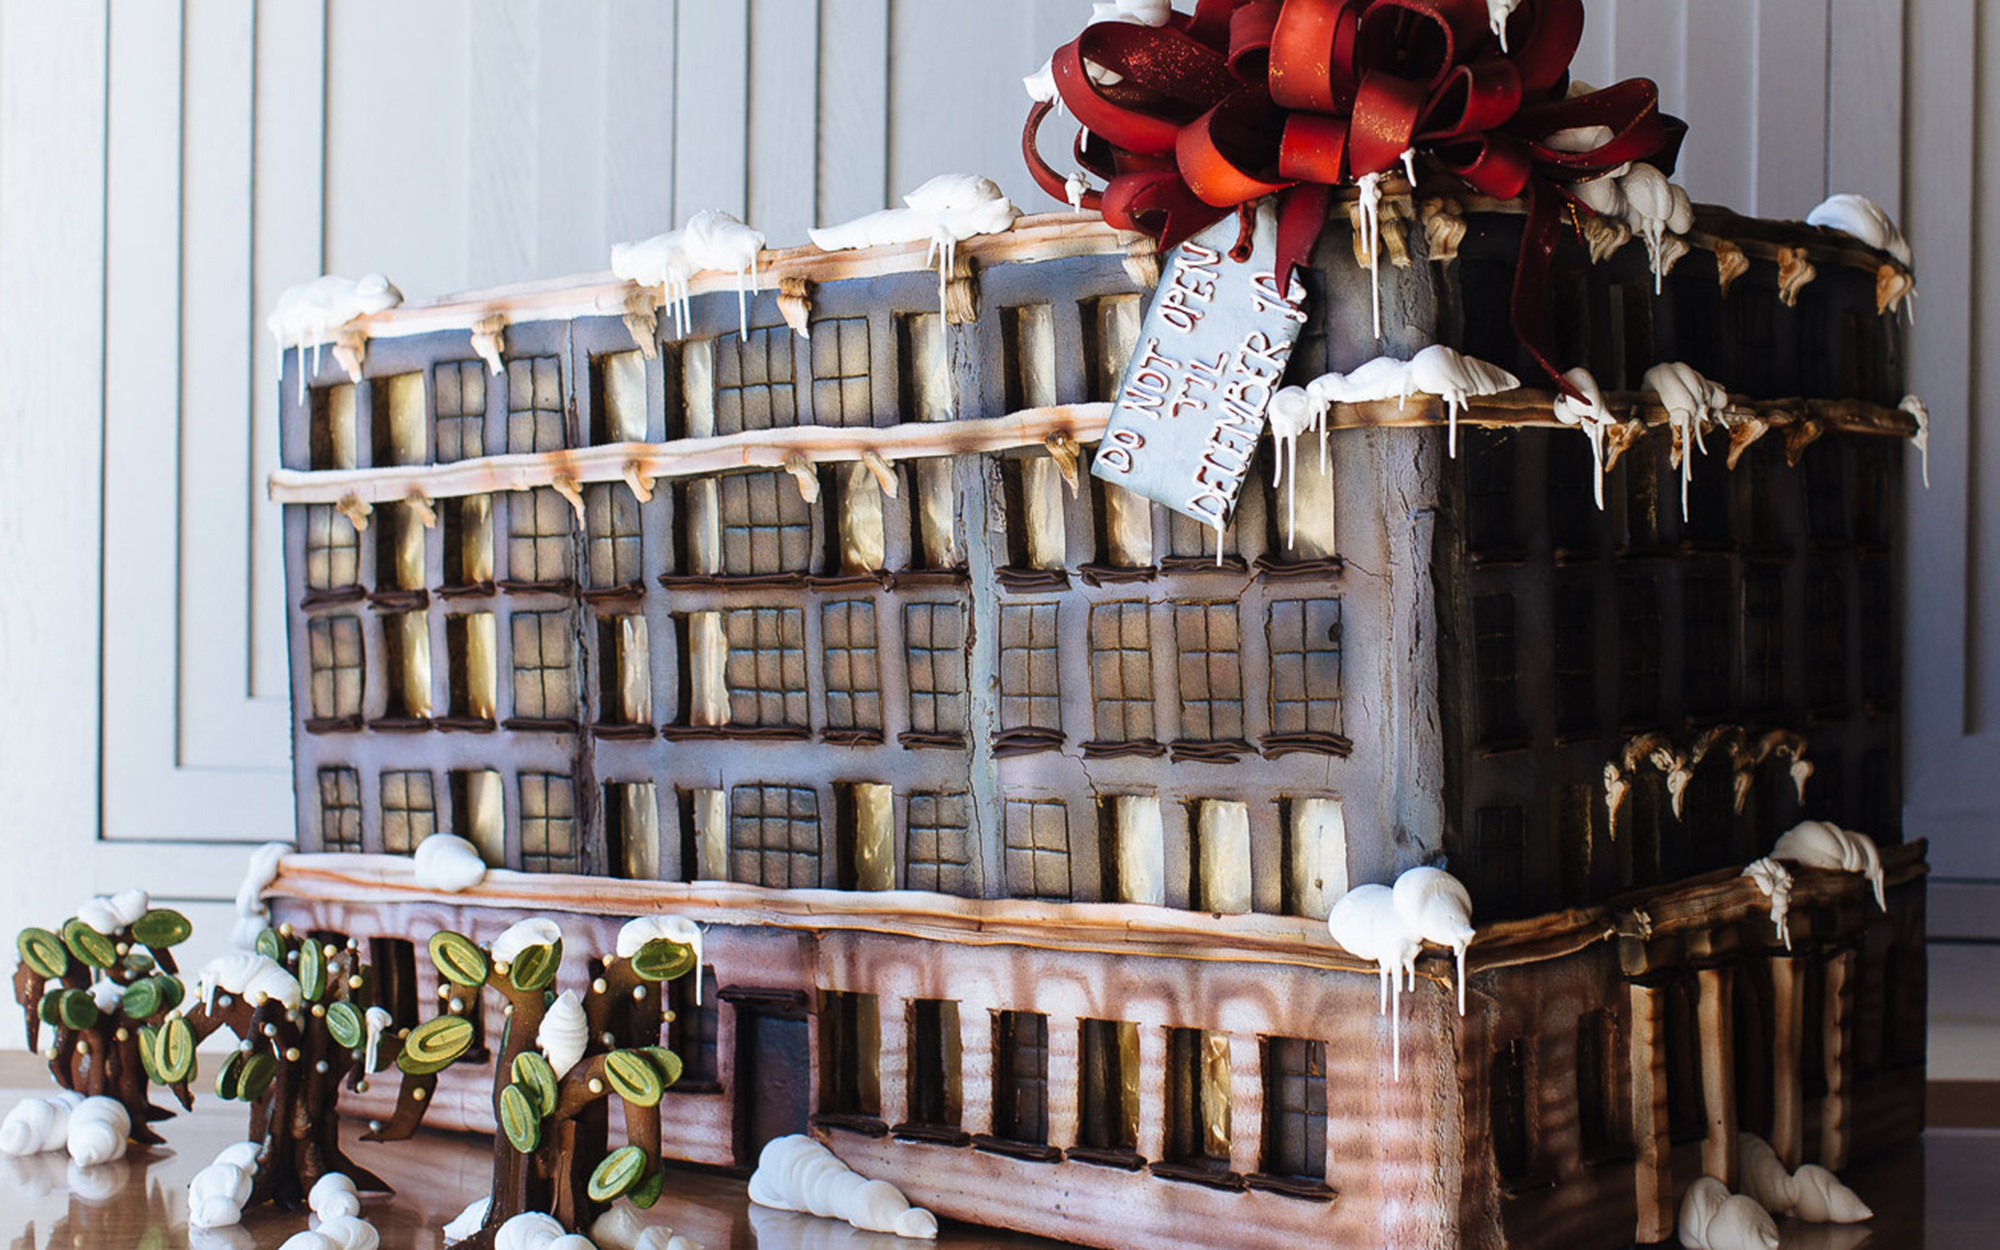 The Best Hotel Gingerbread Houses: Ace Hotel Downtown Los Angeles, California